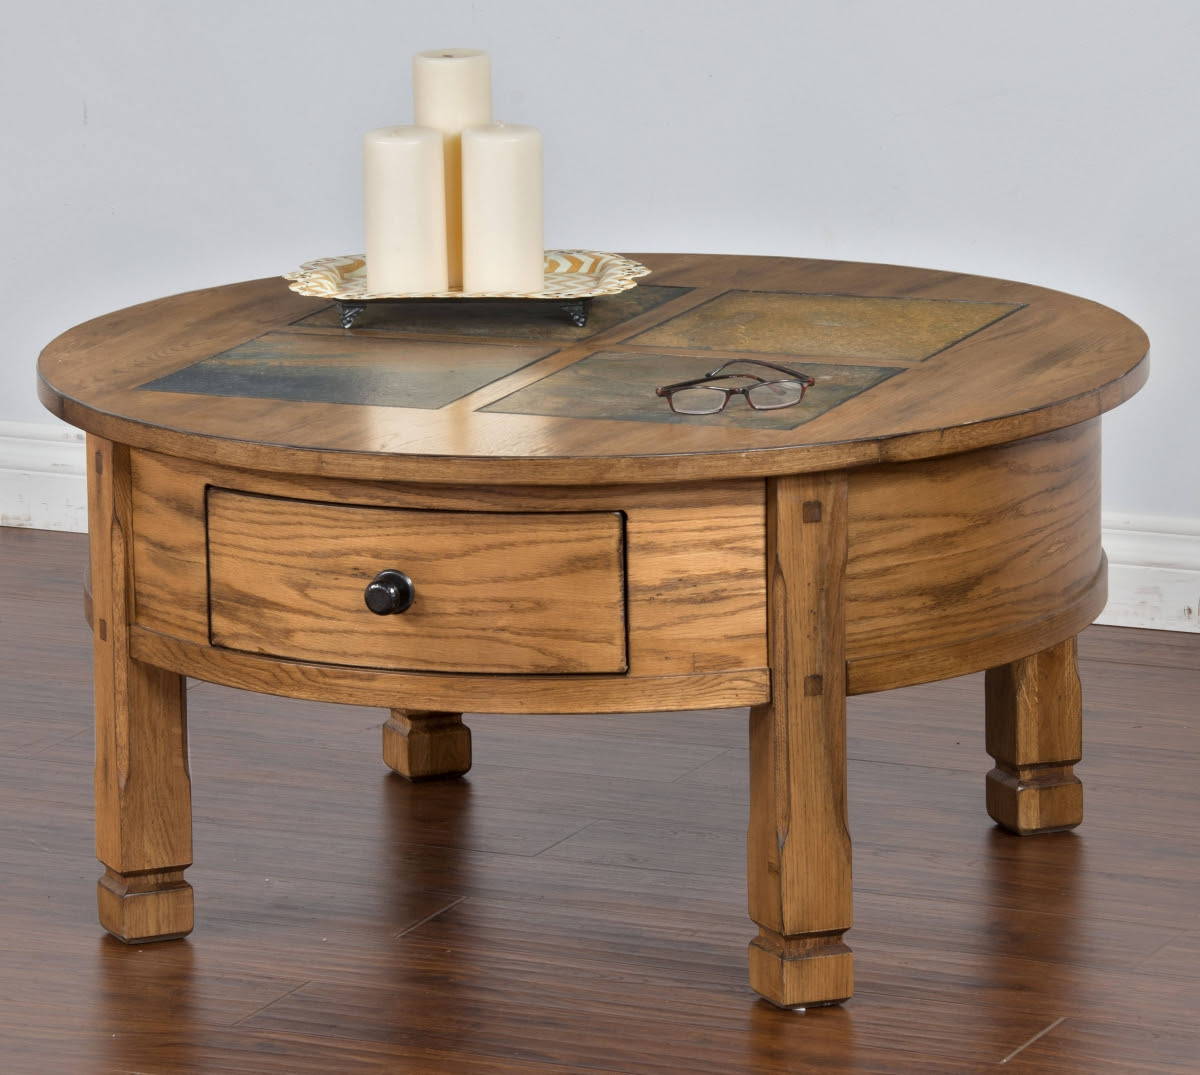 Sedona Traditional Rustic Oak Wood Storage Round Coffee Table The Classy Home